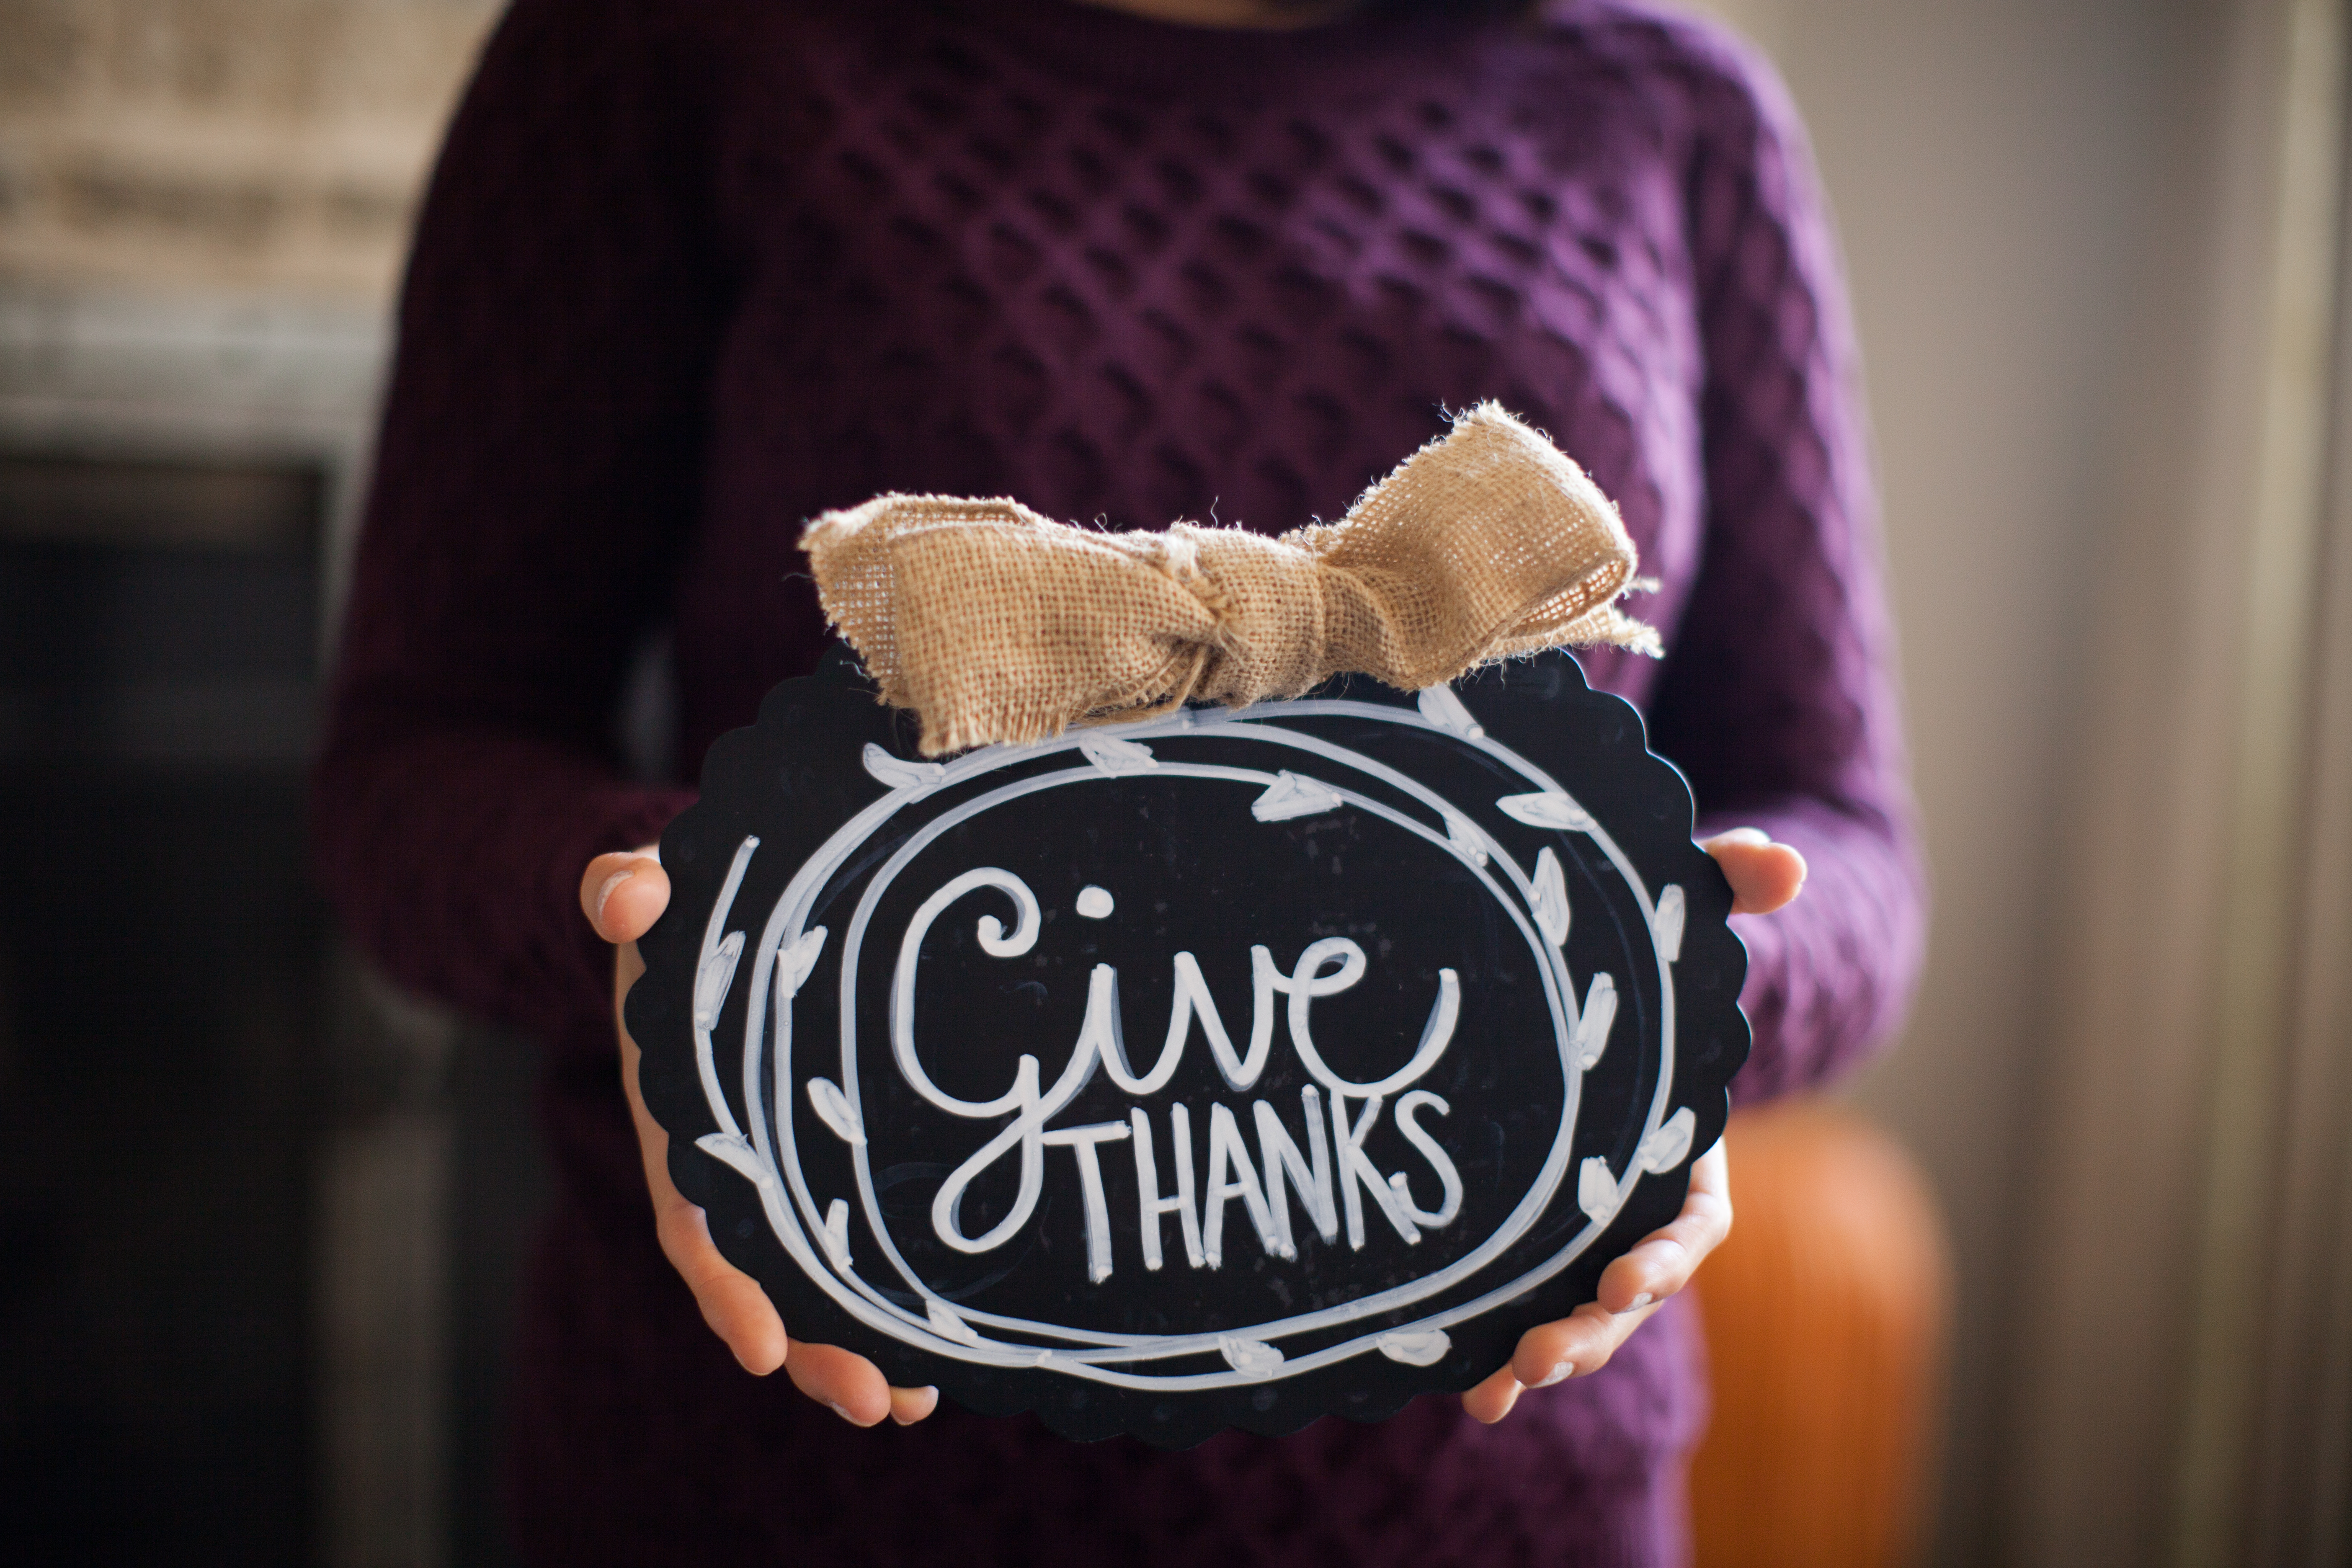 Give thanks sign image